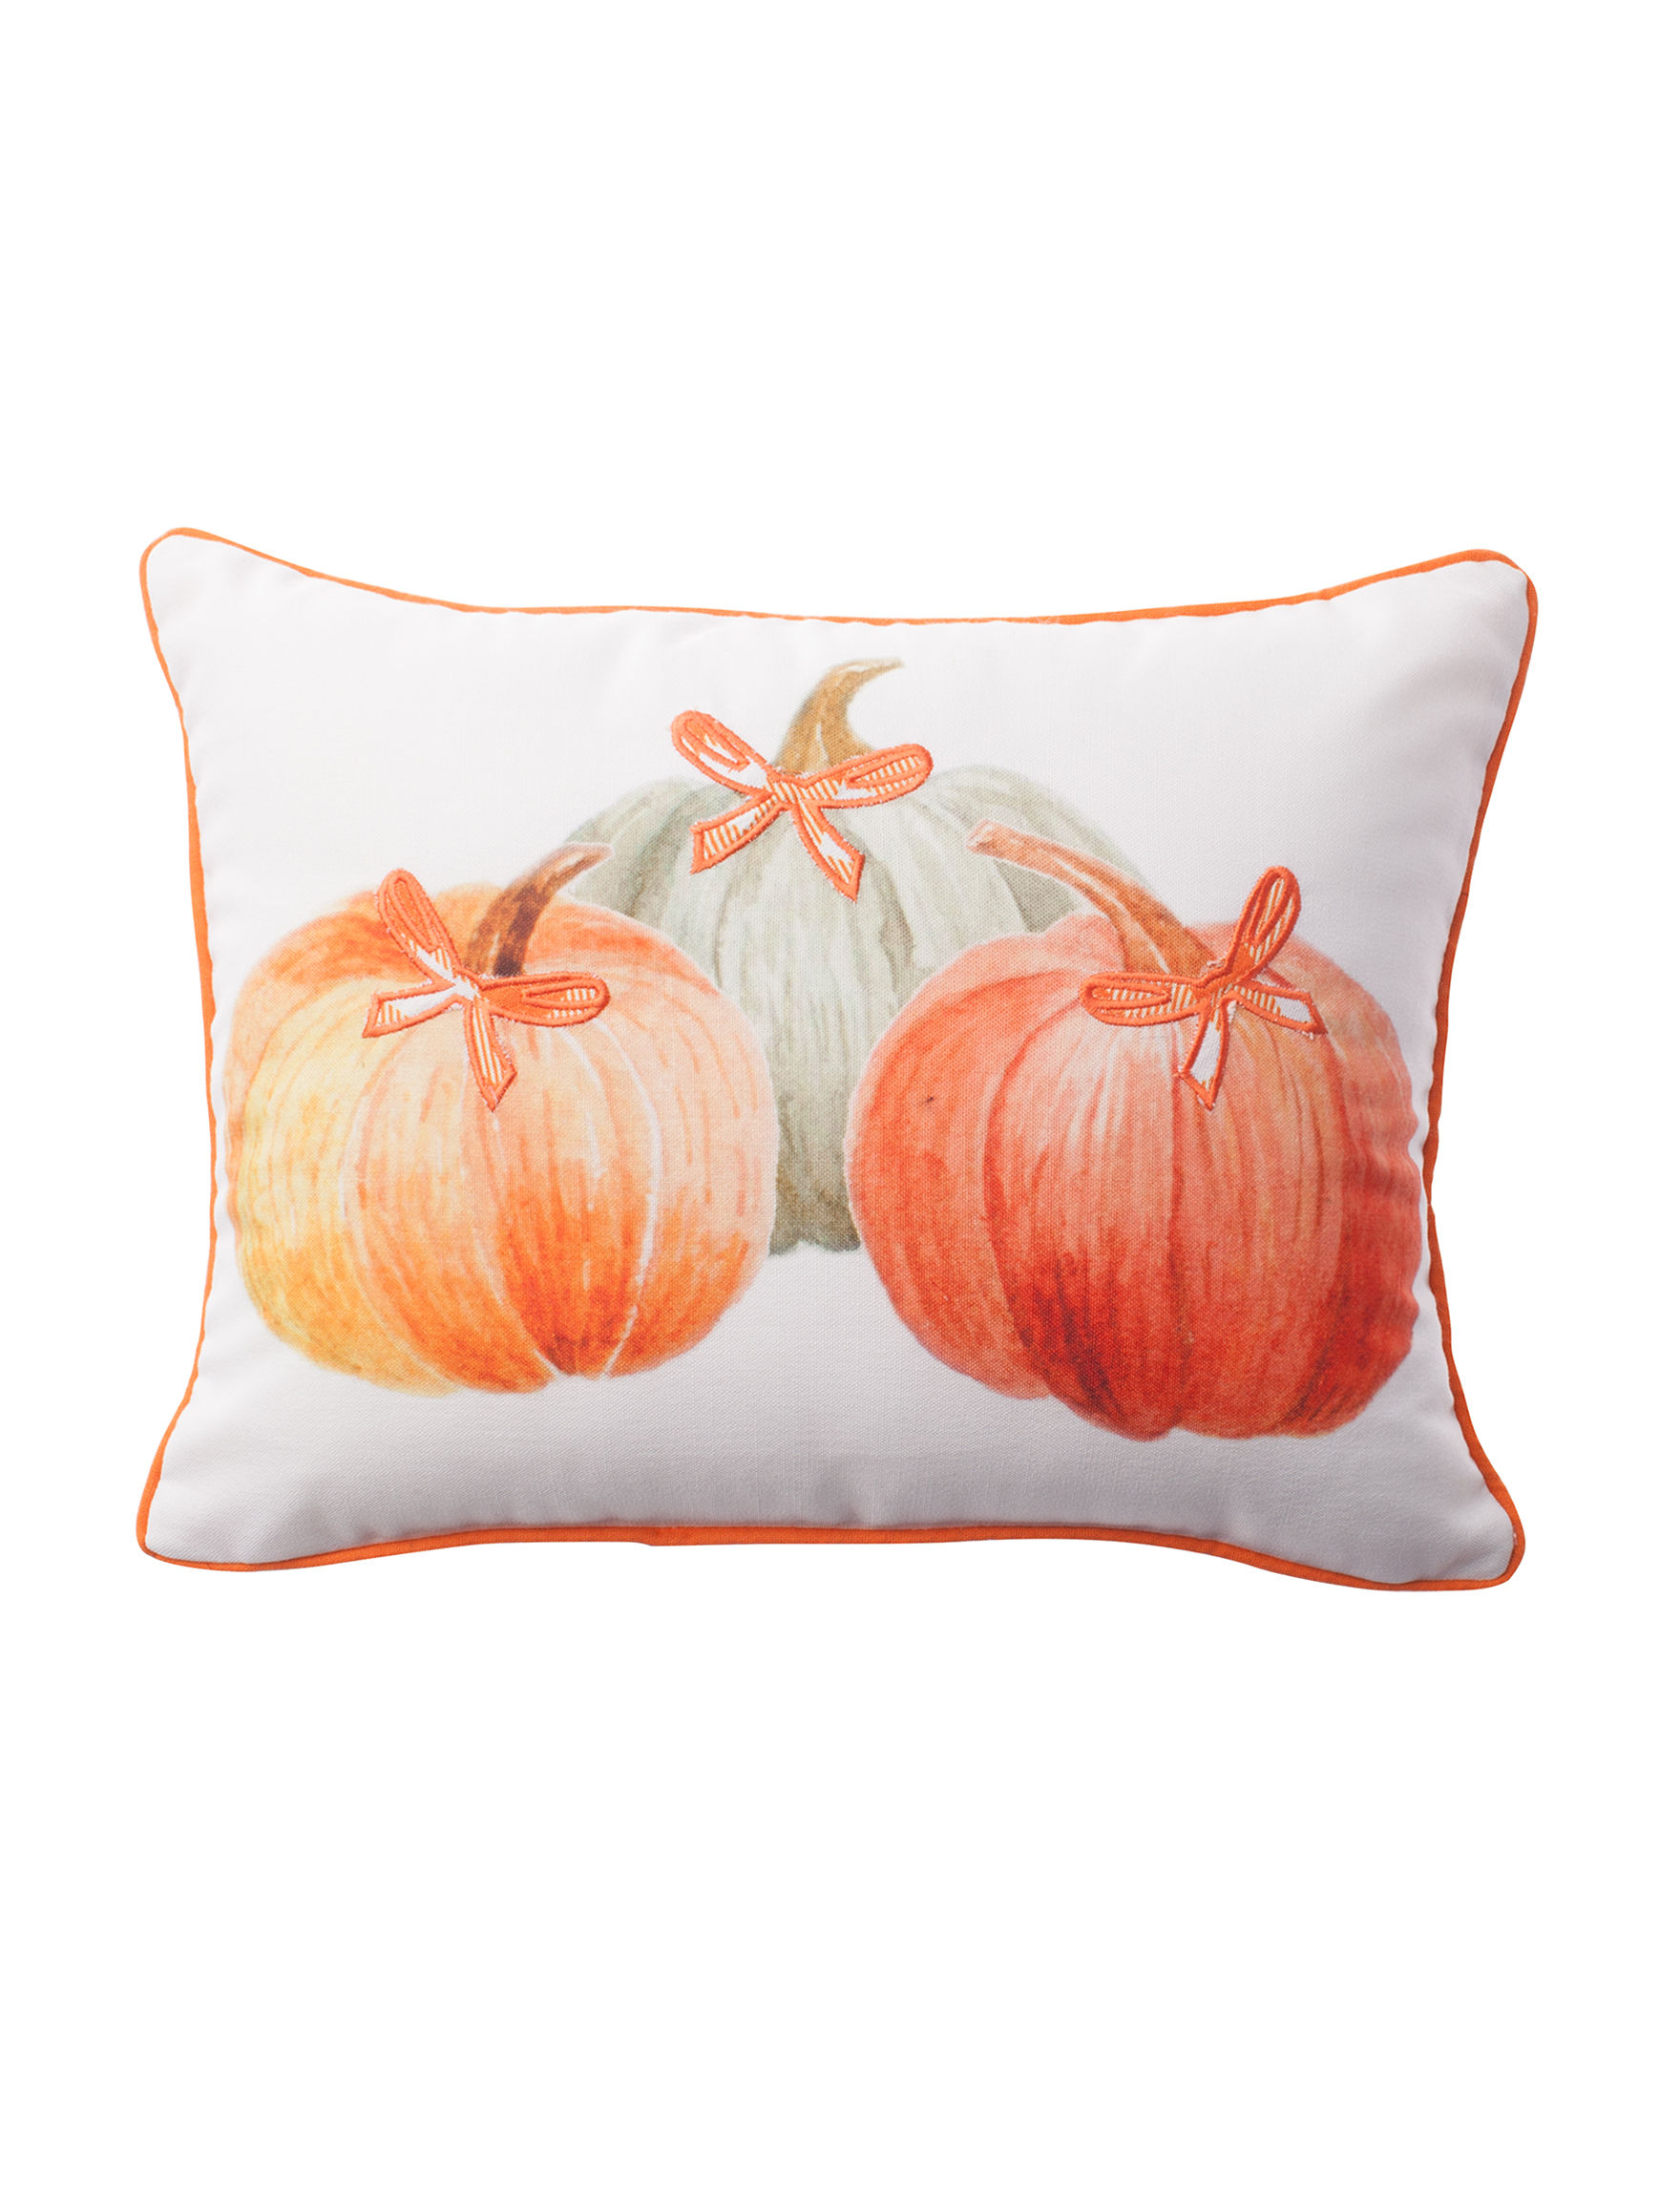 Thro White / Orange Decorative Pillows